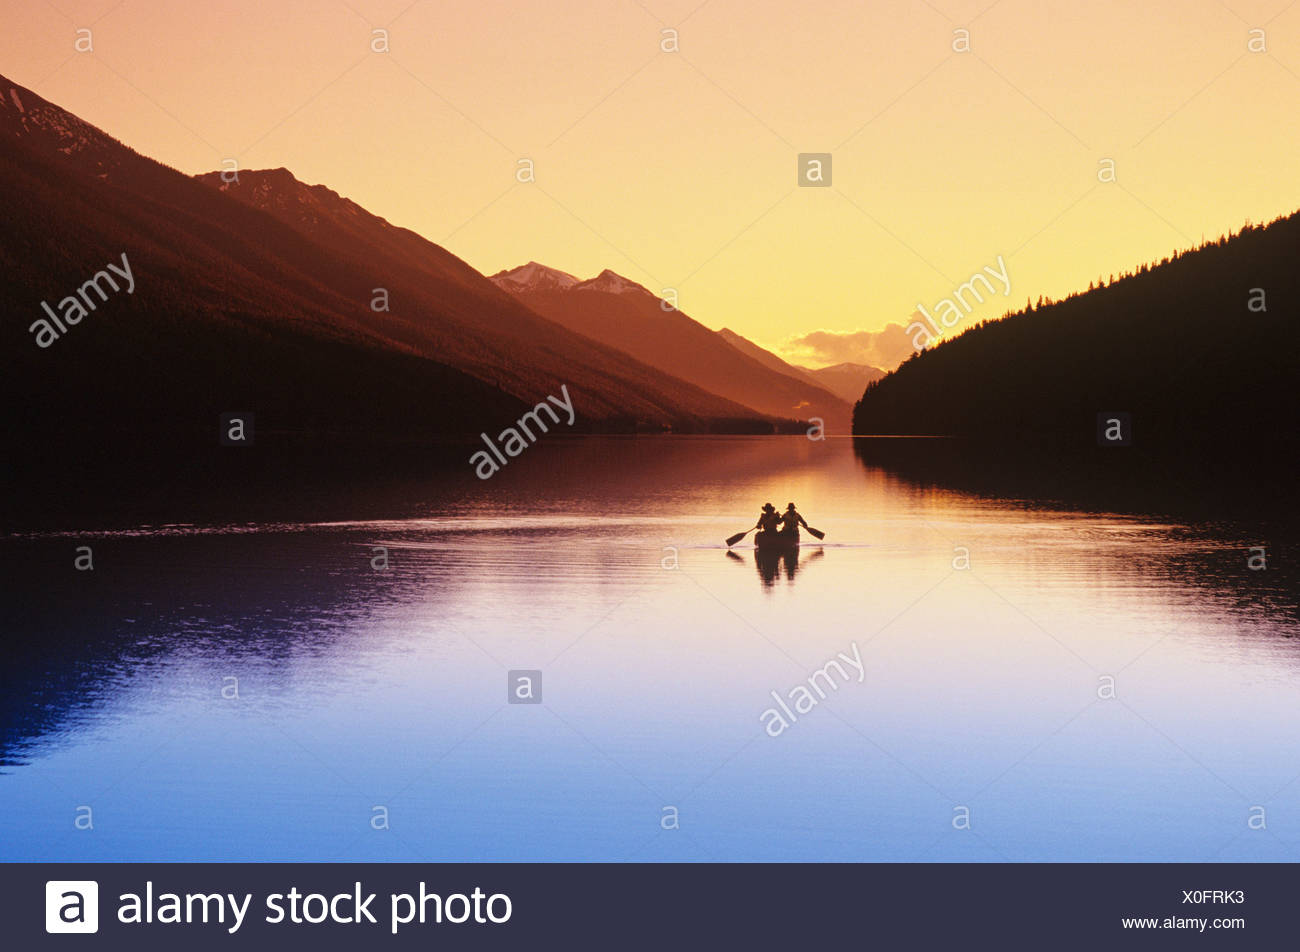 Canoeist on Isaac lake, Bowron Lake Provincial Park, British Columbia, Canada. - Stock Image